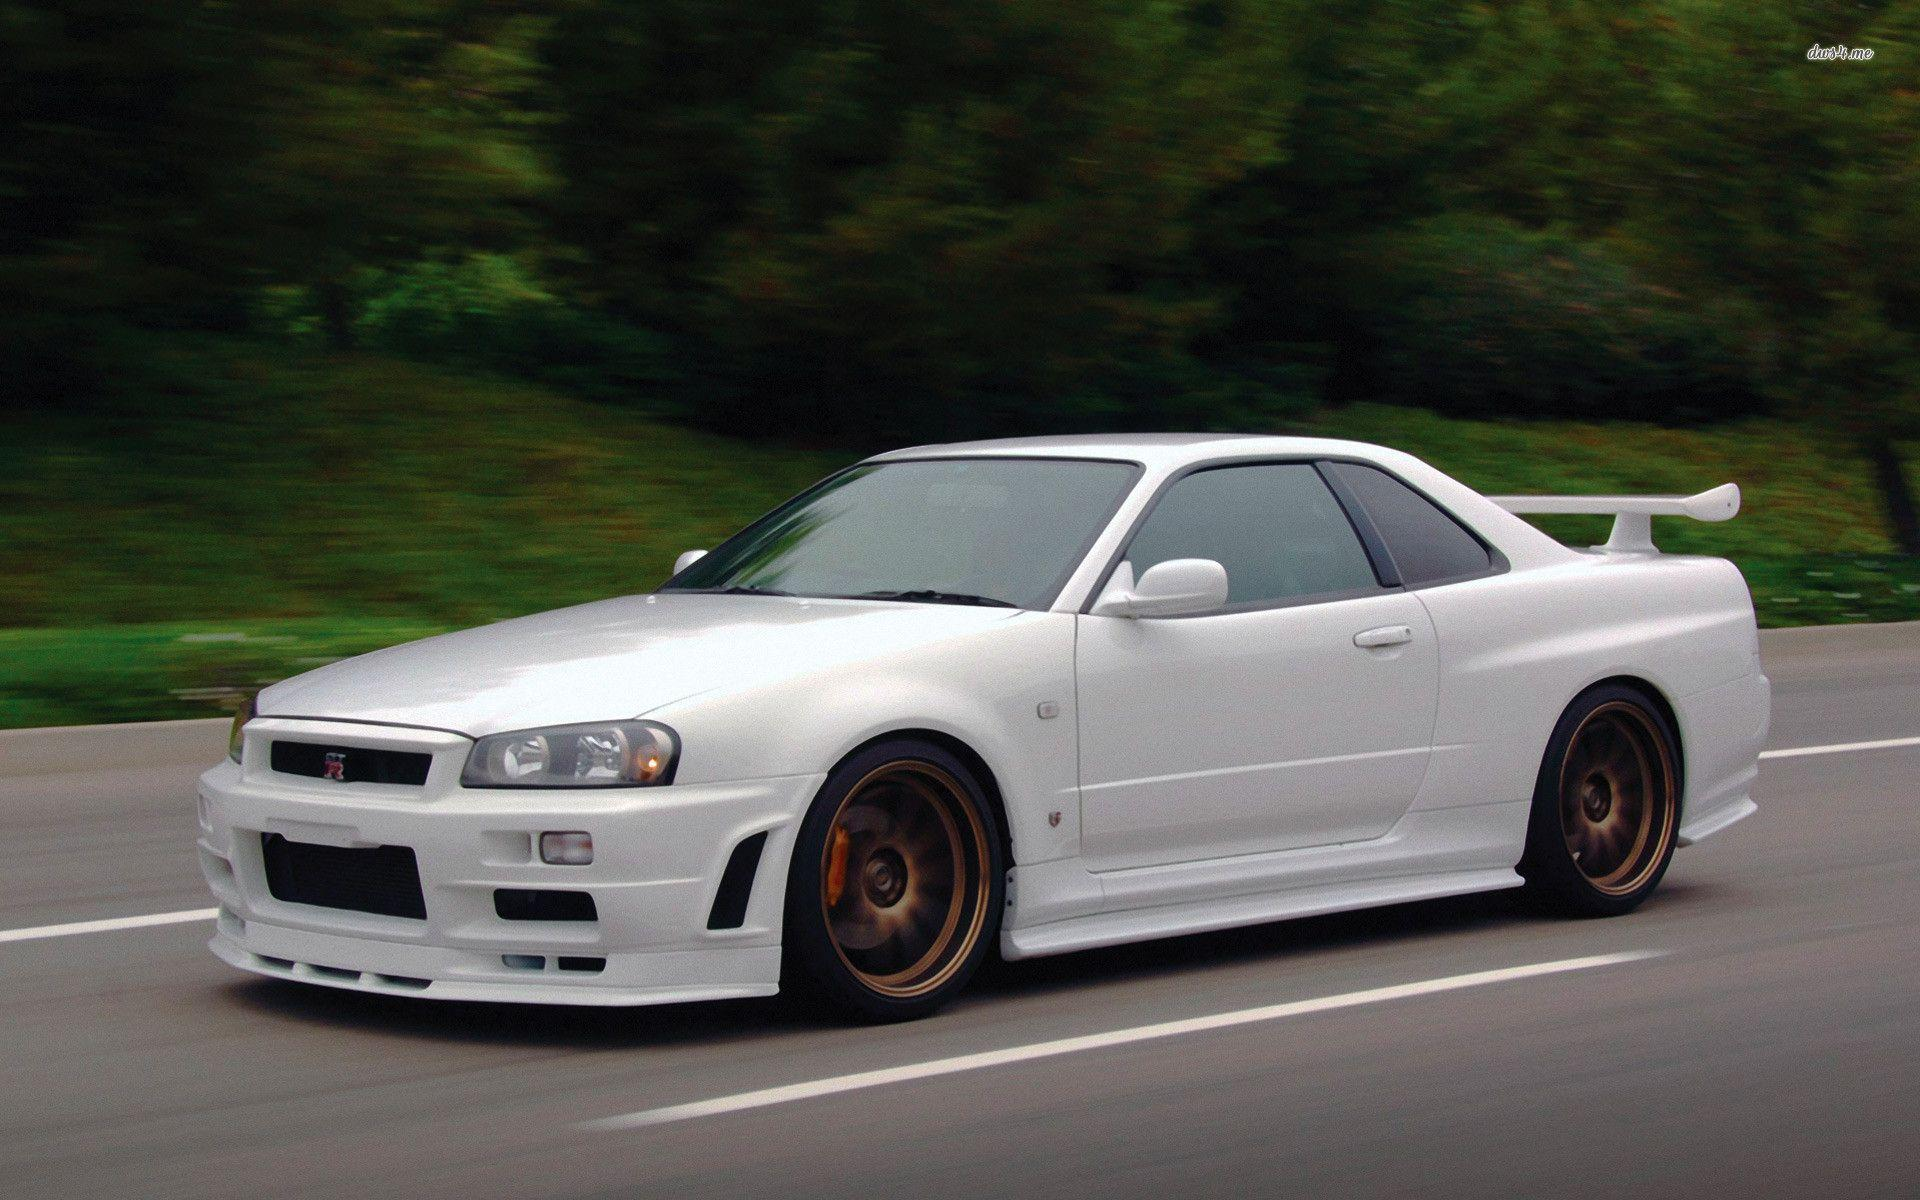 Nissan Skyline Wallpapers   Full HD Wallpaper Search